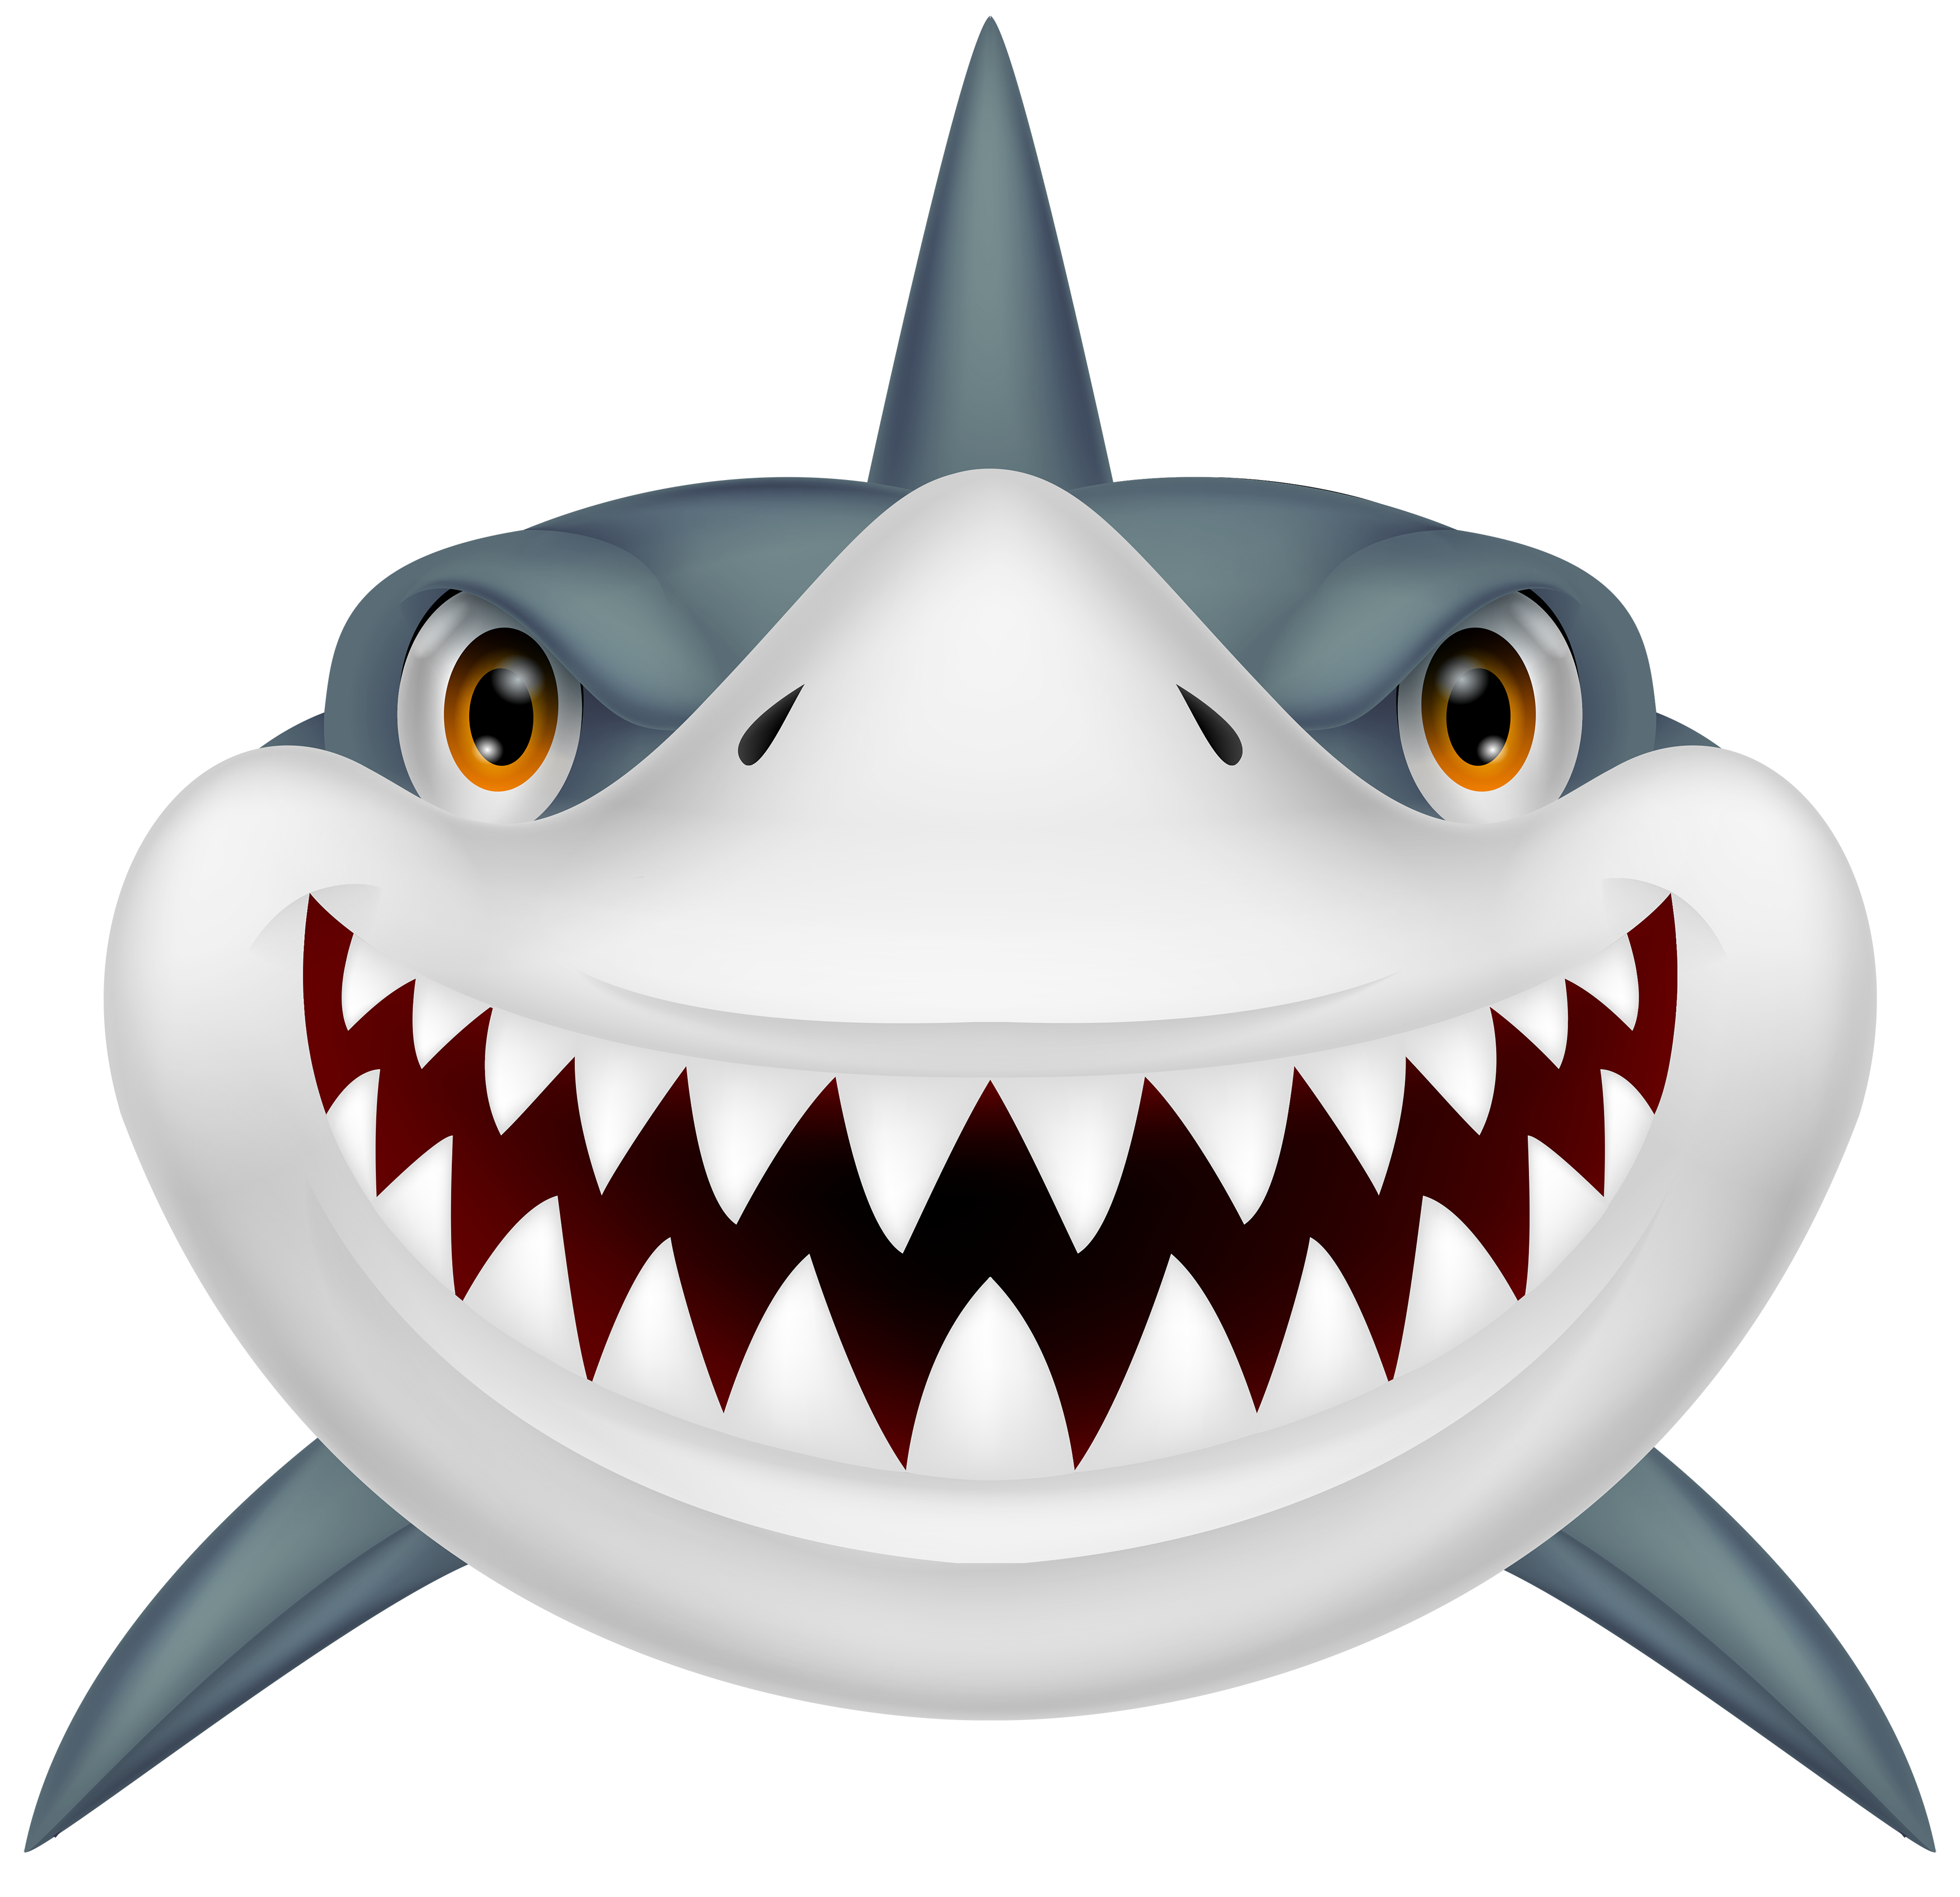 shark silhouette clip art at getdrawings com free for personal use rh getdrawings com